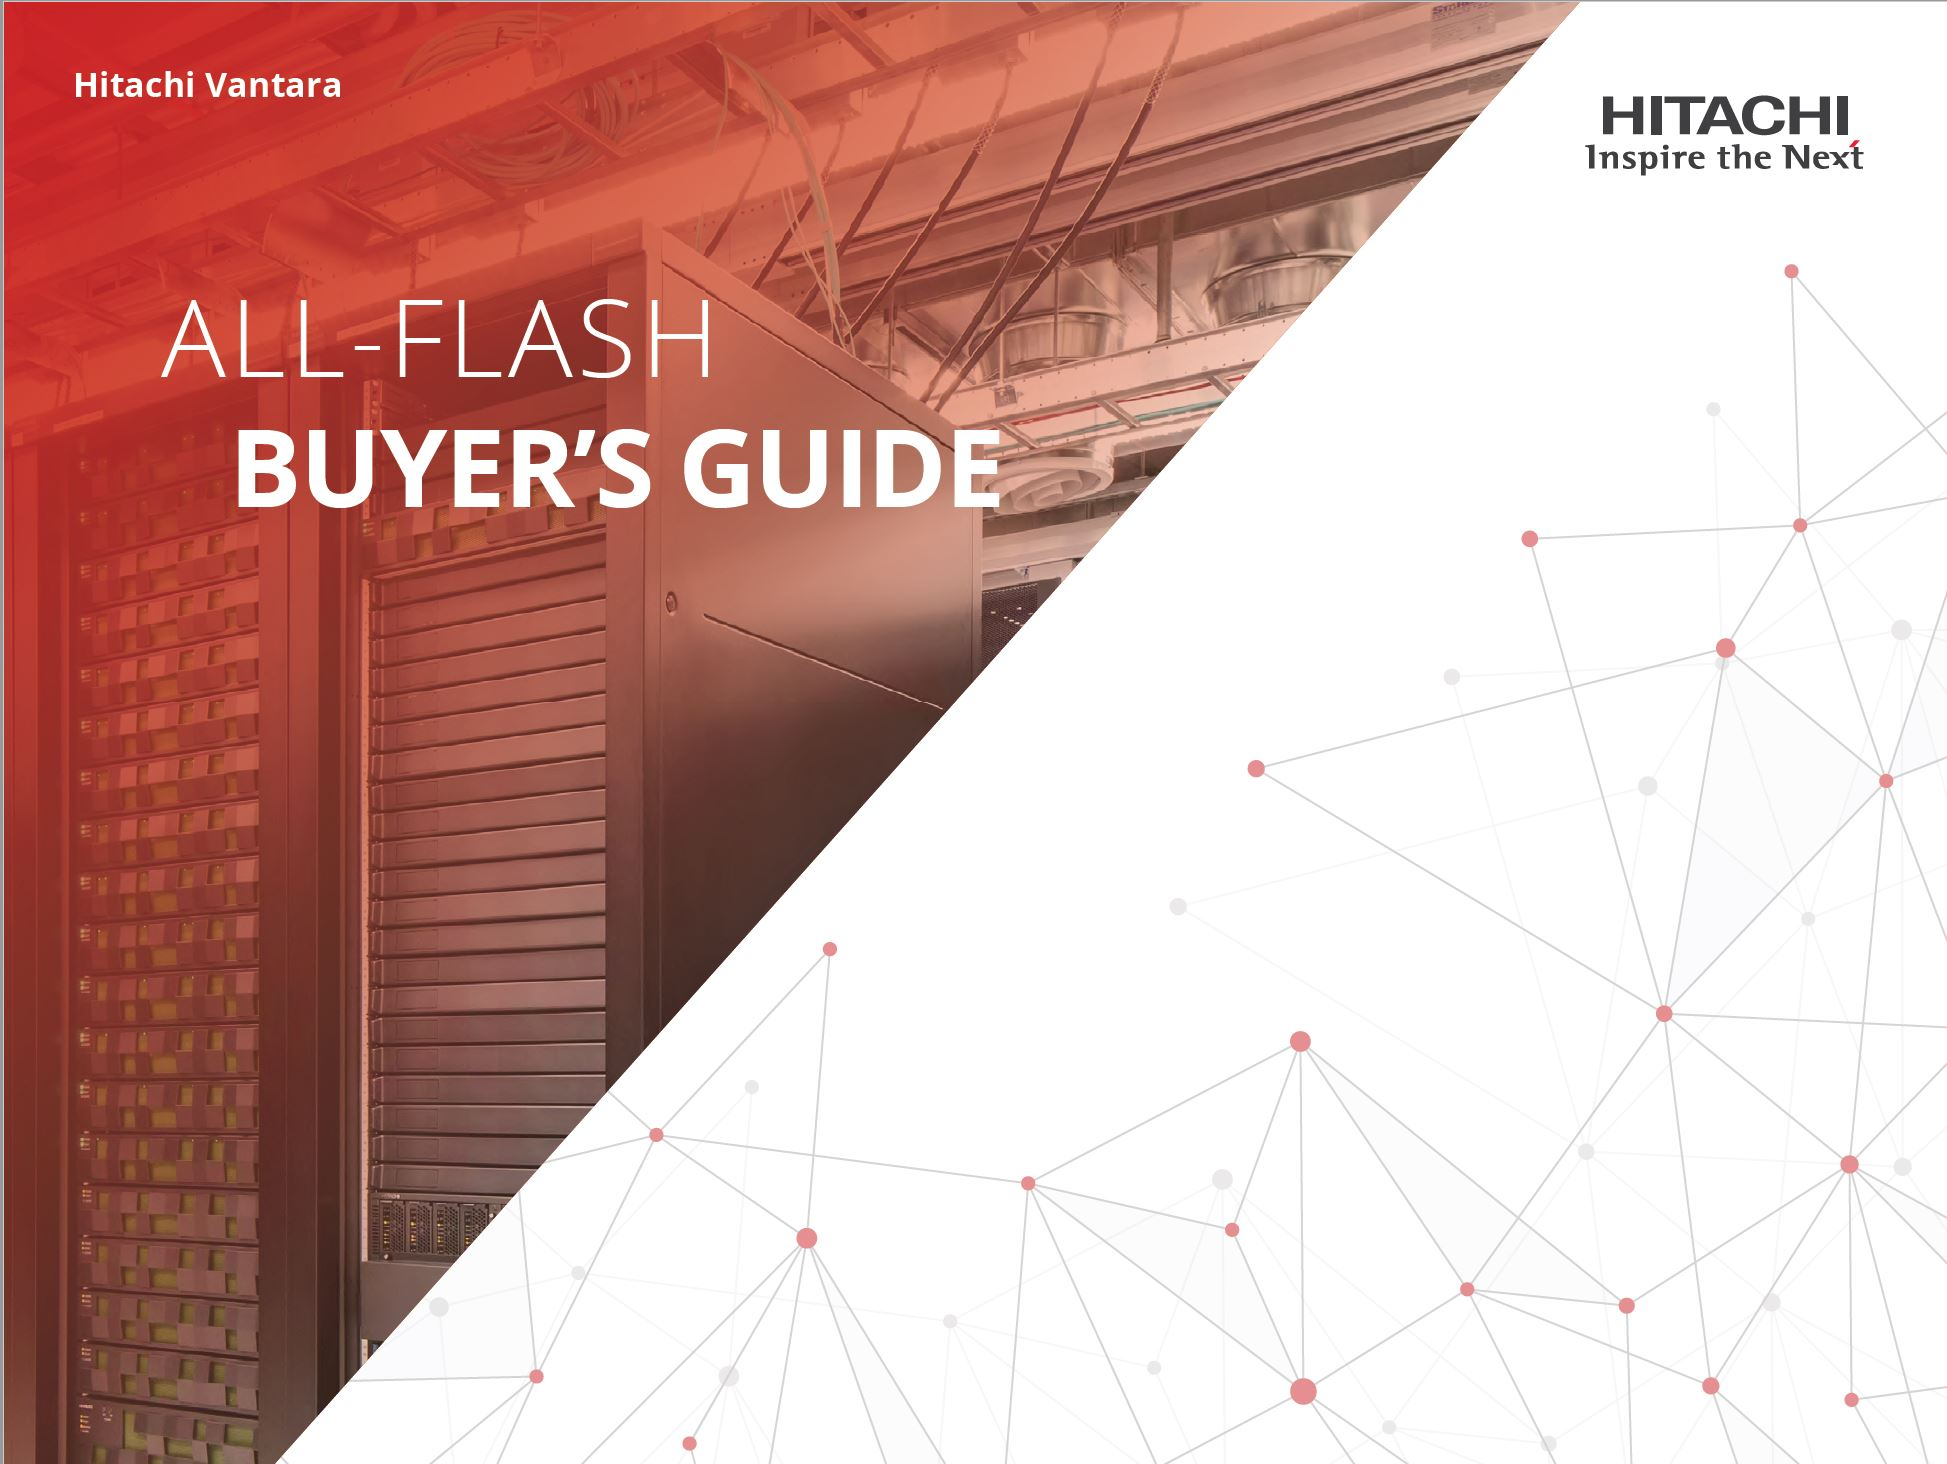 All-Flash Buyer's Guide: 5 Reasons to Select Hitachi Vantara for All-Flash Solutions.pdf